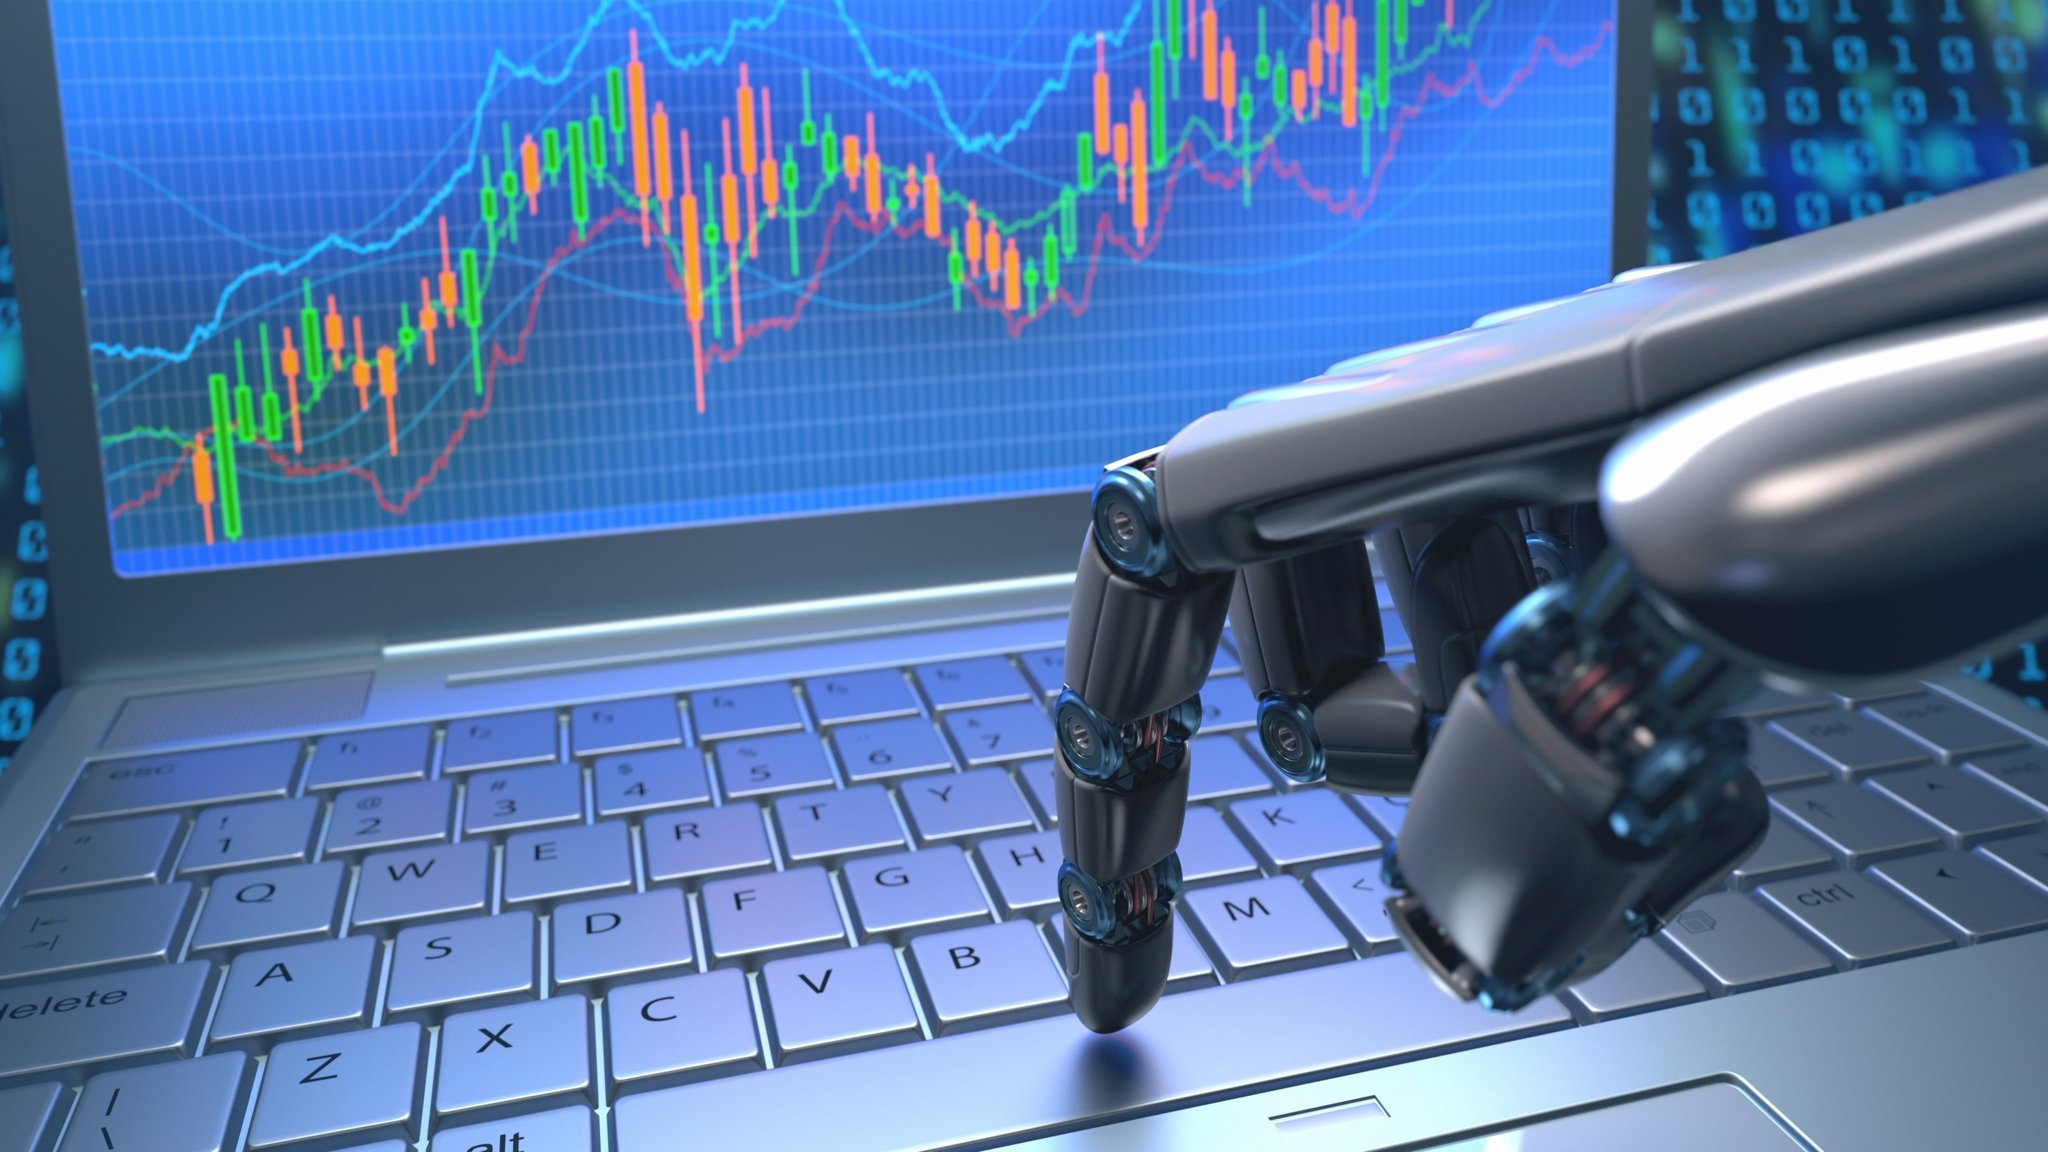 Artificial Intelligence in Finance Brings Risks to Stability | Financial  Tribune